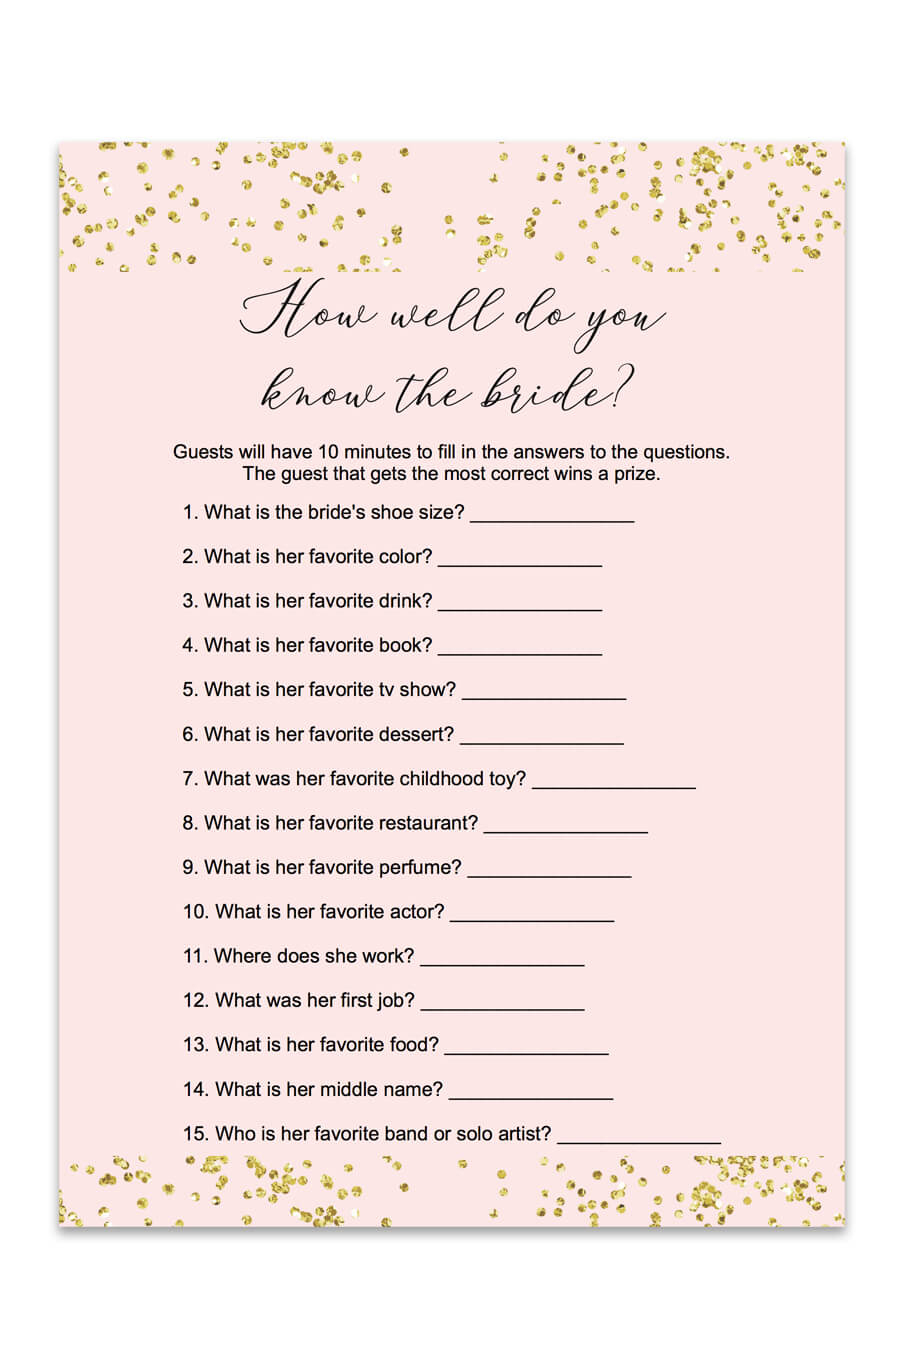 Blush And Confetti How Well Do You Know The Bride Game - Chicfetti - How Well Do You Know The Bride Game Free Printable